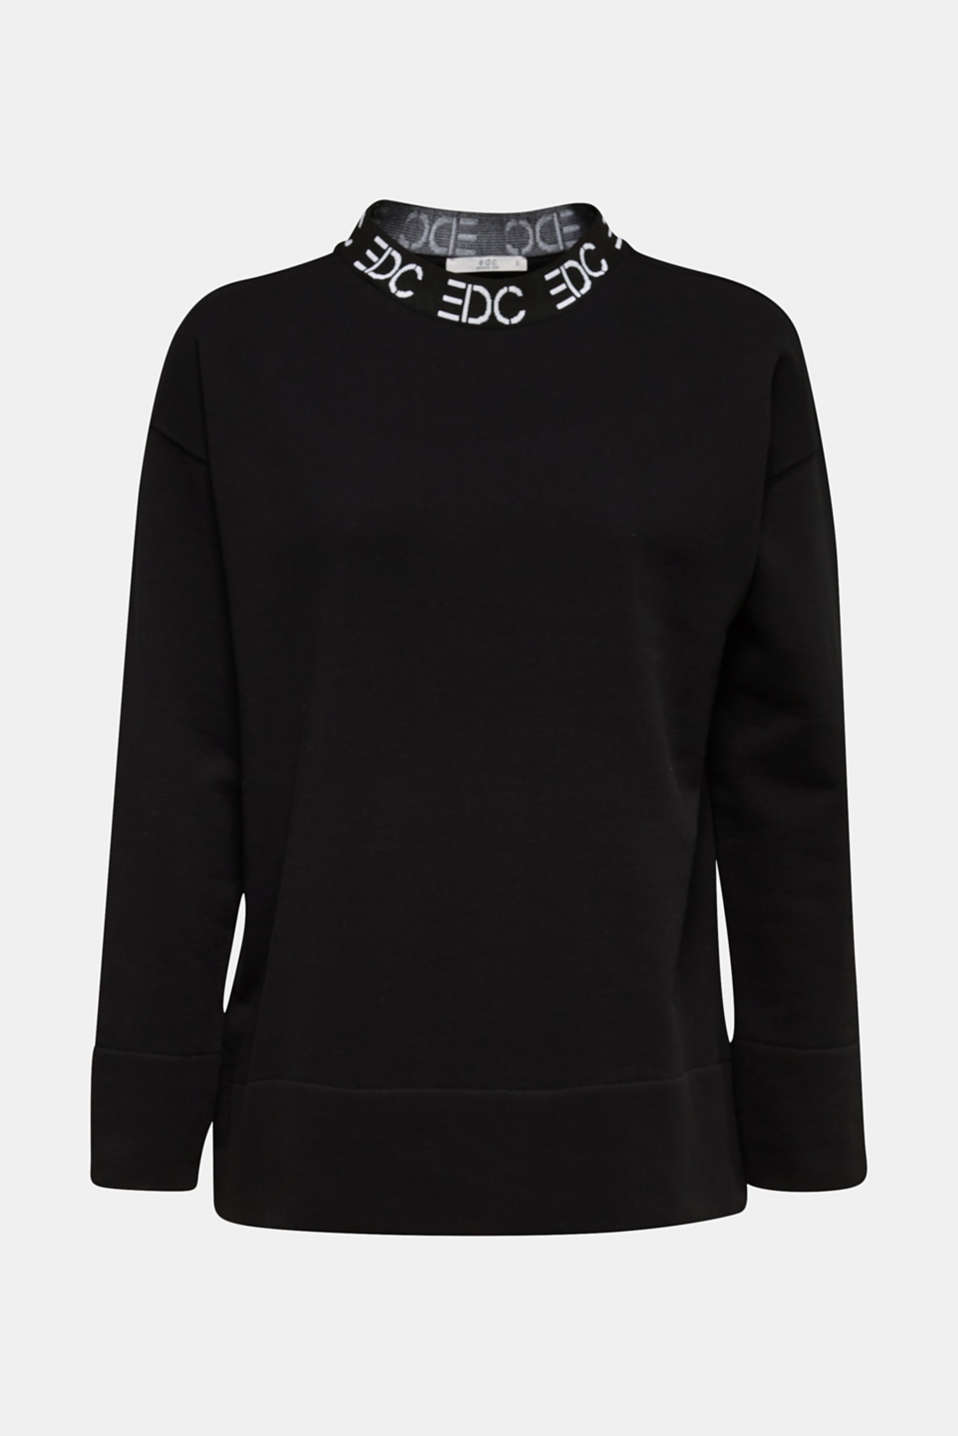 Sweatshirt with a logo on the cuffs, BLACK, detail image number 5